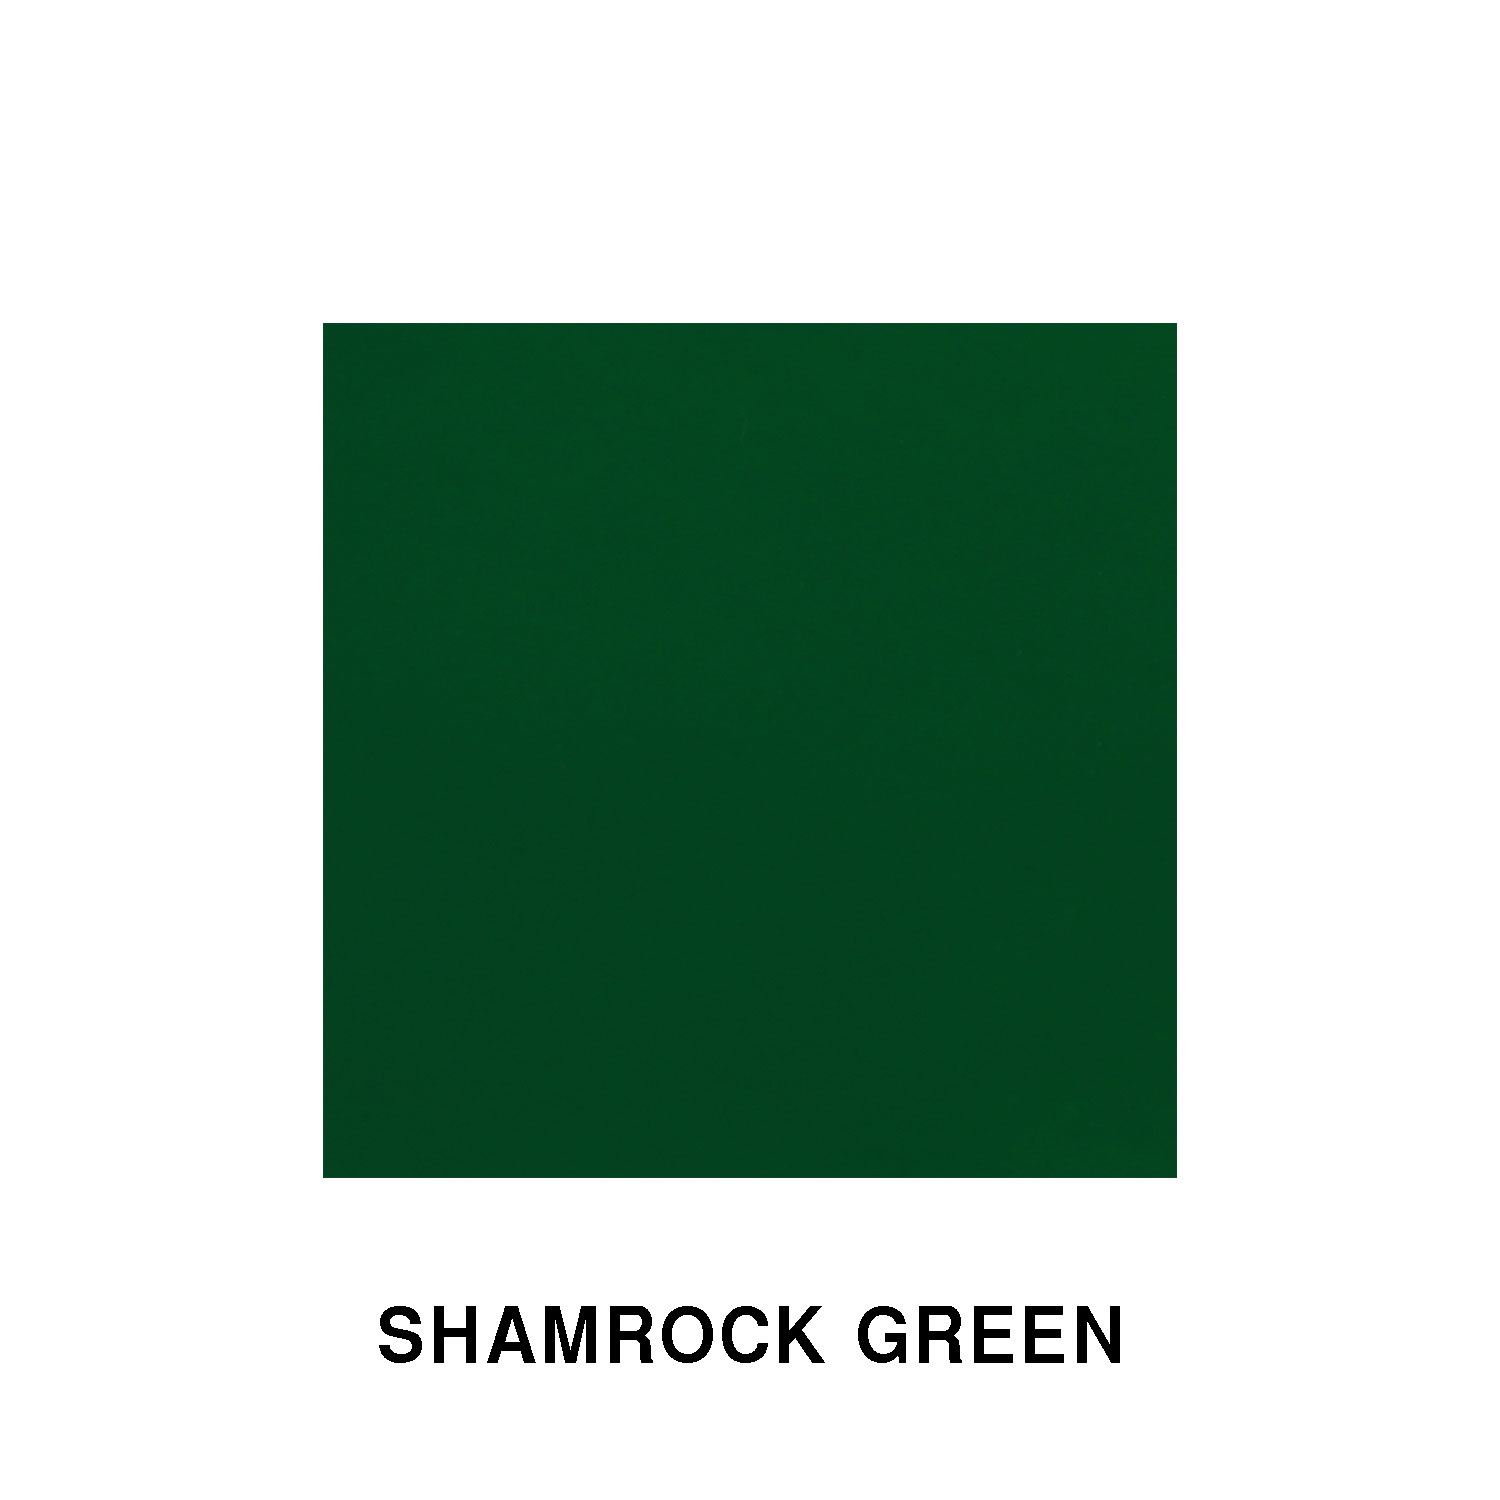 Shamrock Green Fiberglass Finish